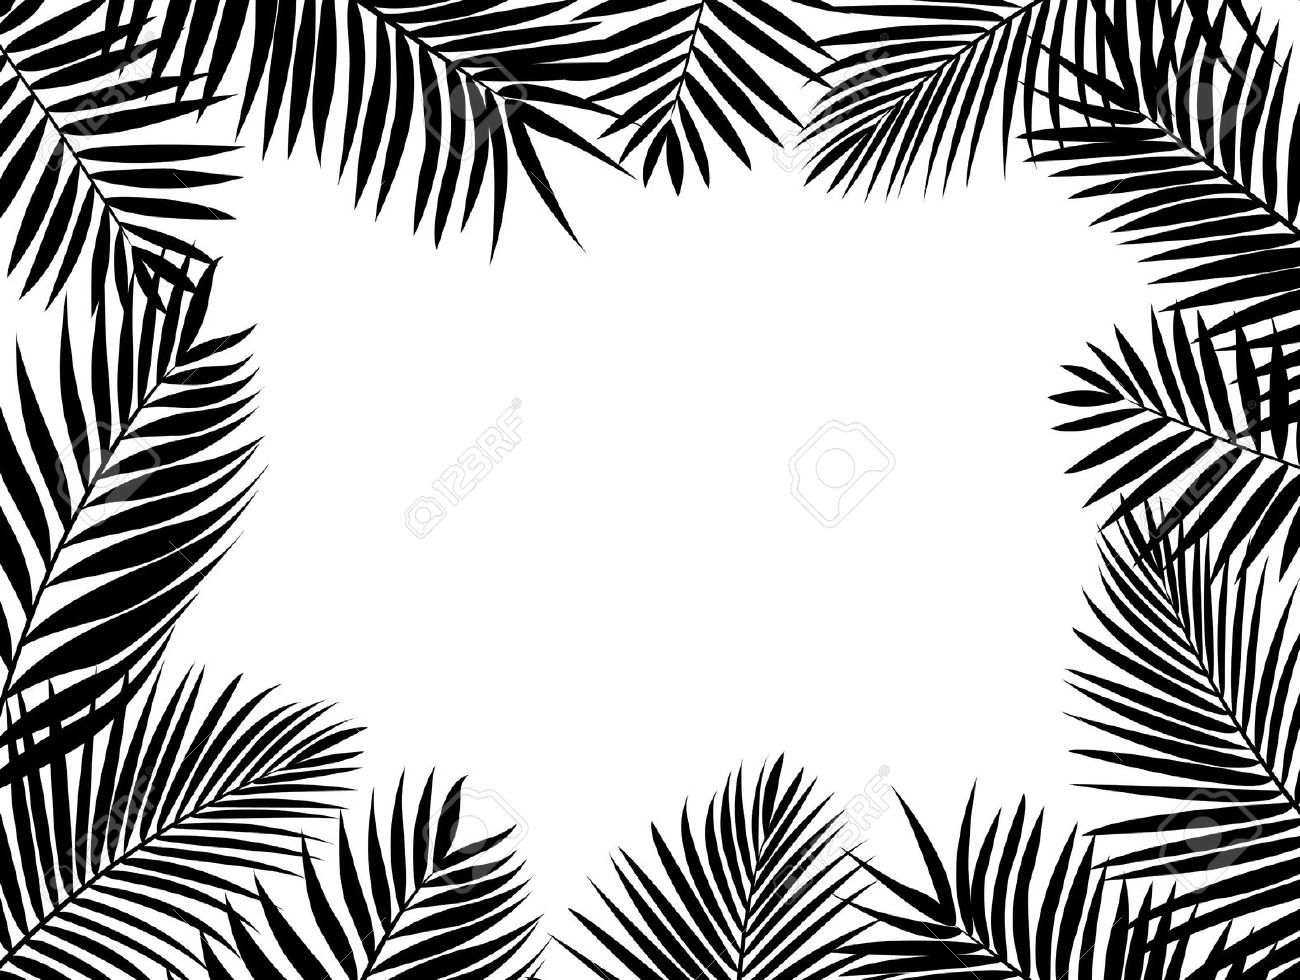 Palm tree leaves clipart black and white.